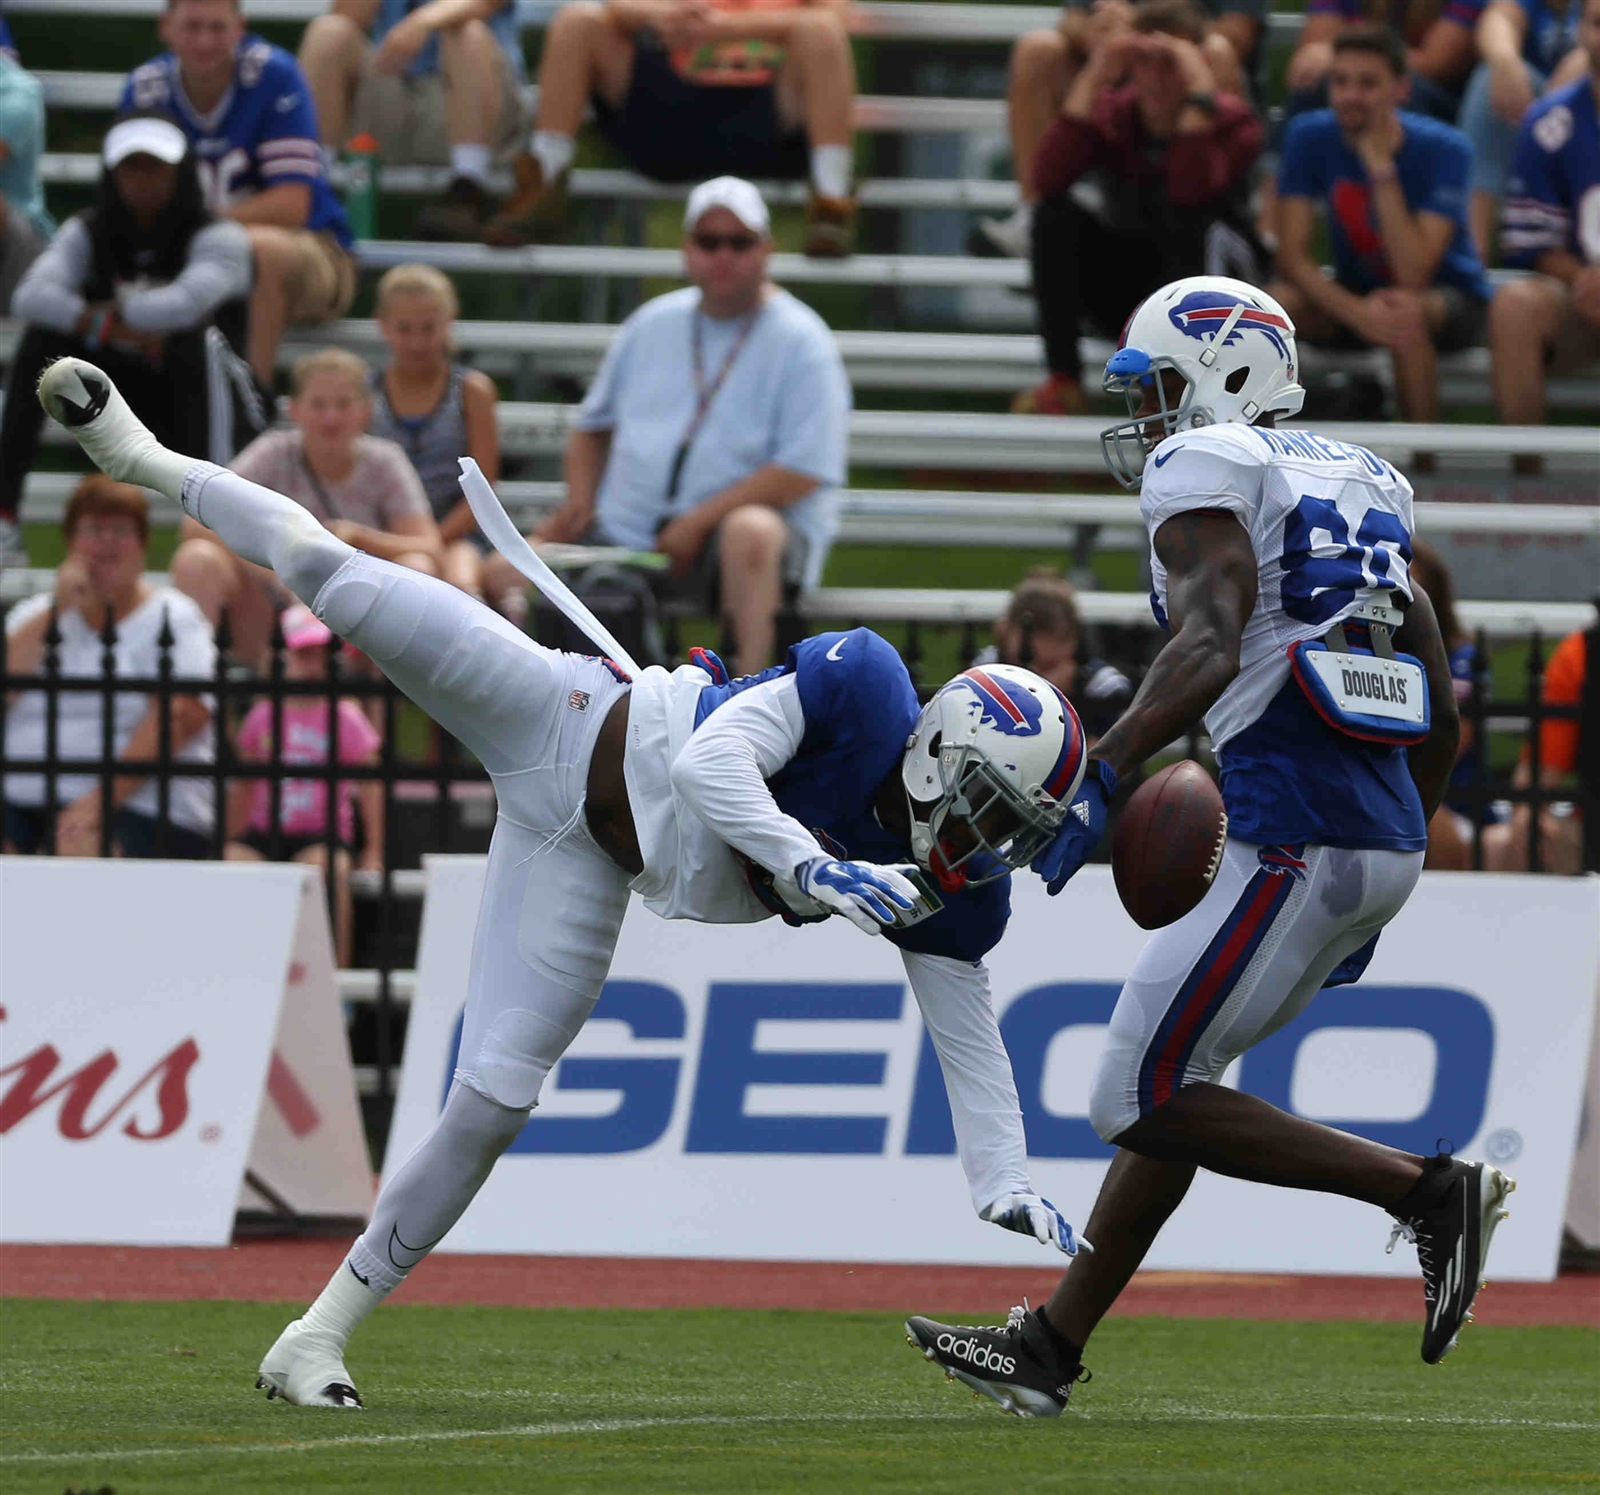 Buffalo Bills cornerback Rookie cornerback Kevon Seymour has been impressive in training camp and the first preseason game for the Buffalo Bills. (James P. McCoy/ Buffalo News)